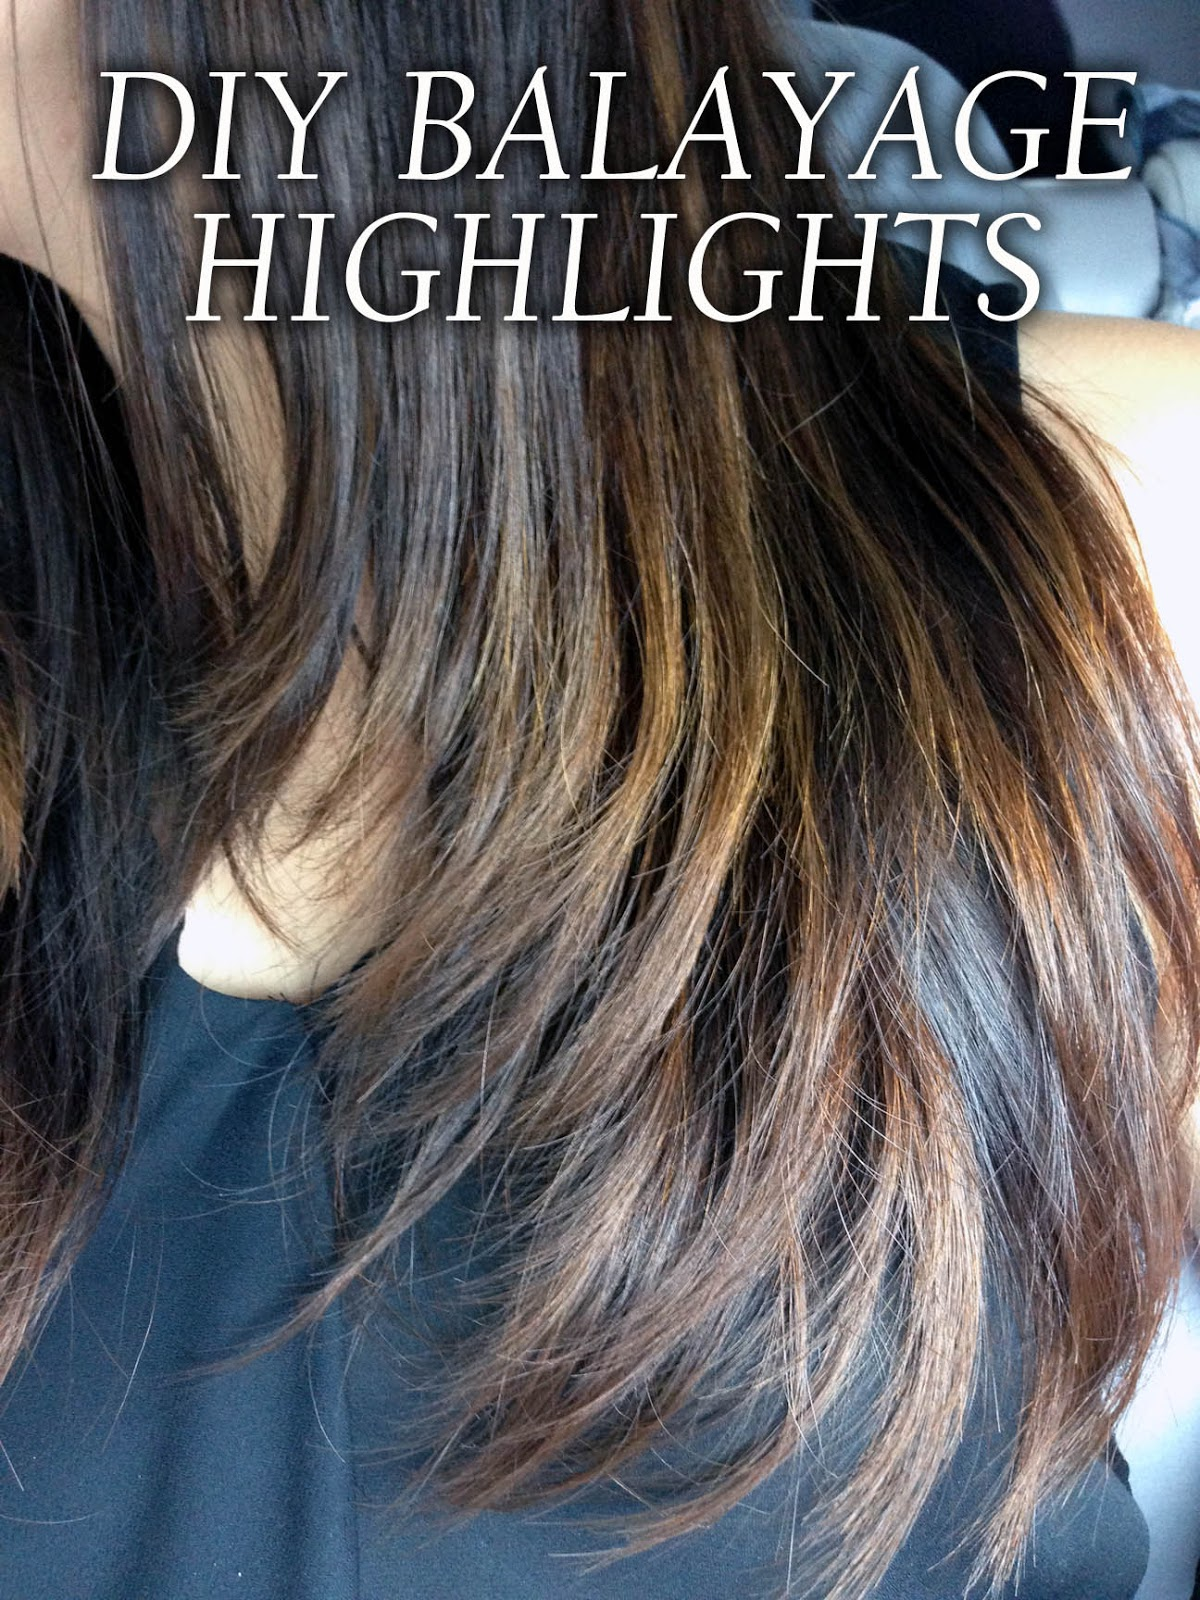 Diy balayage highlights